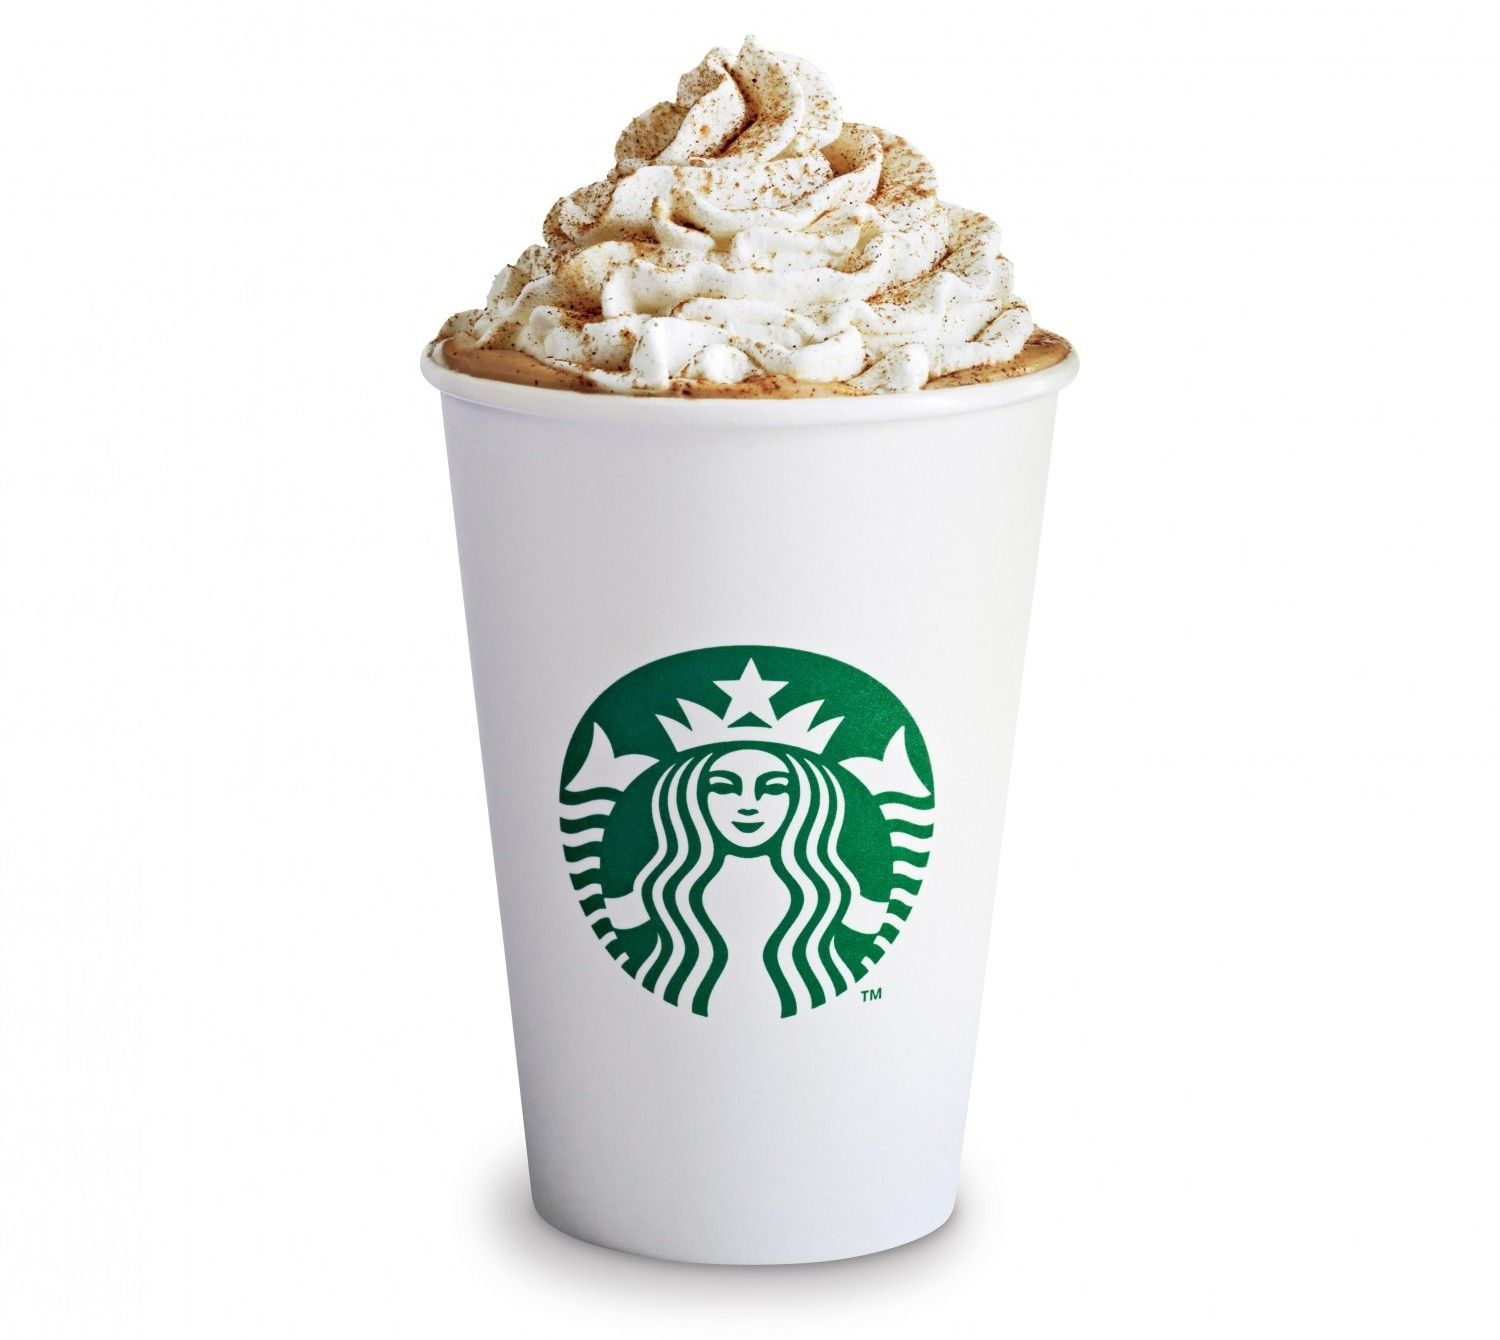 starbucks selling coffee in the land Case study: starbucks selling coffee in the land of tea (p 127-128) question 1 many of the same environmental factors, such as cultural factors, that operate in the domestic market also exist internationally.